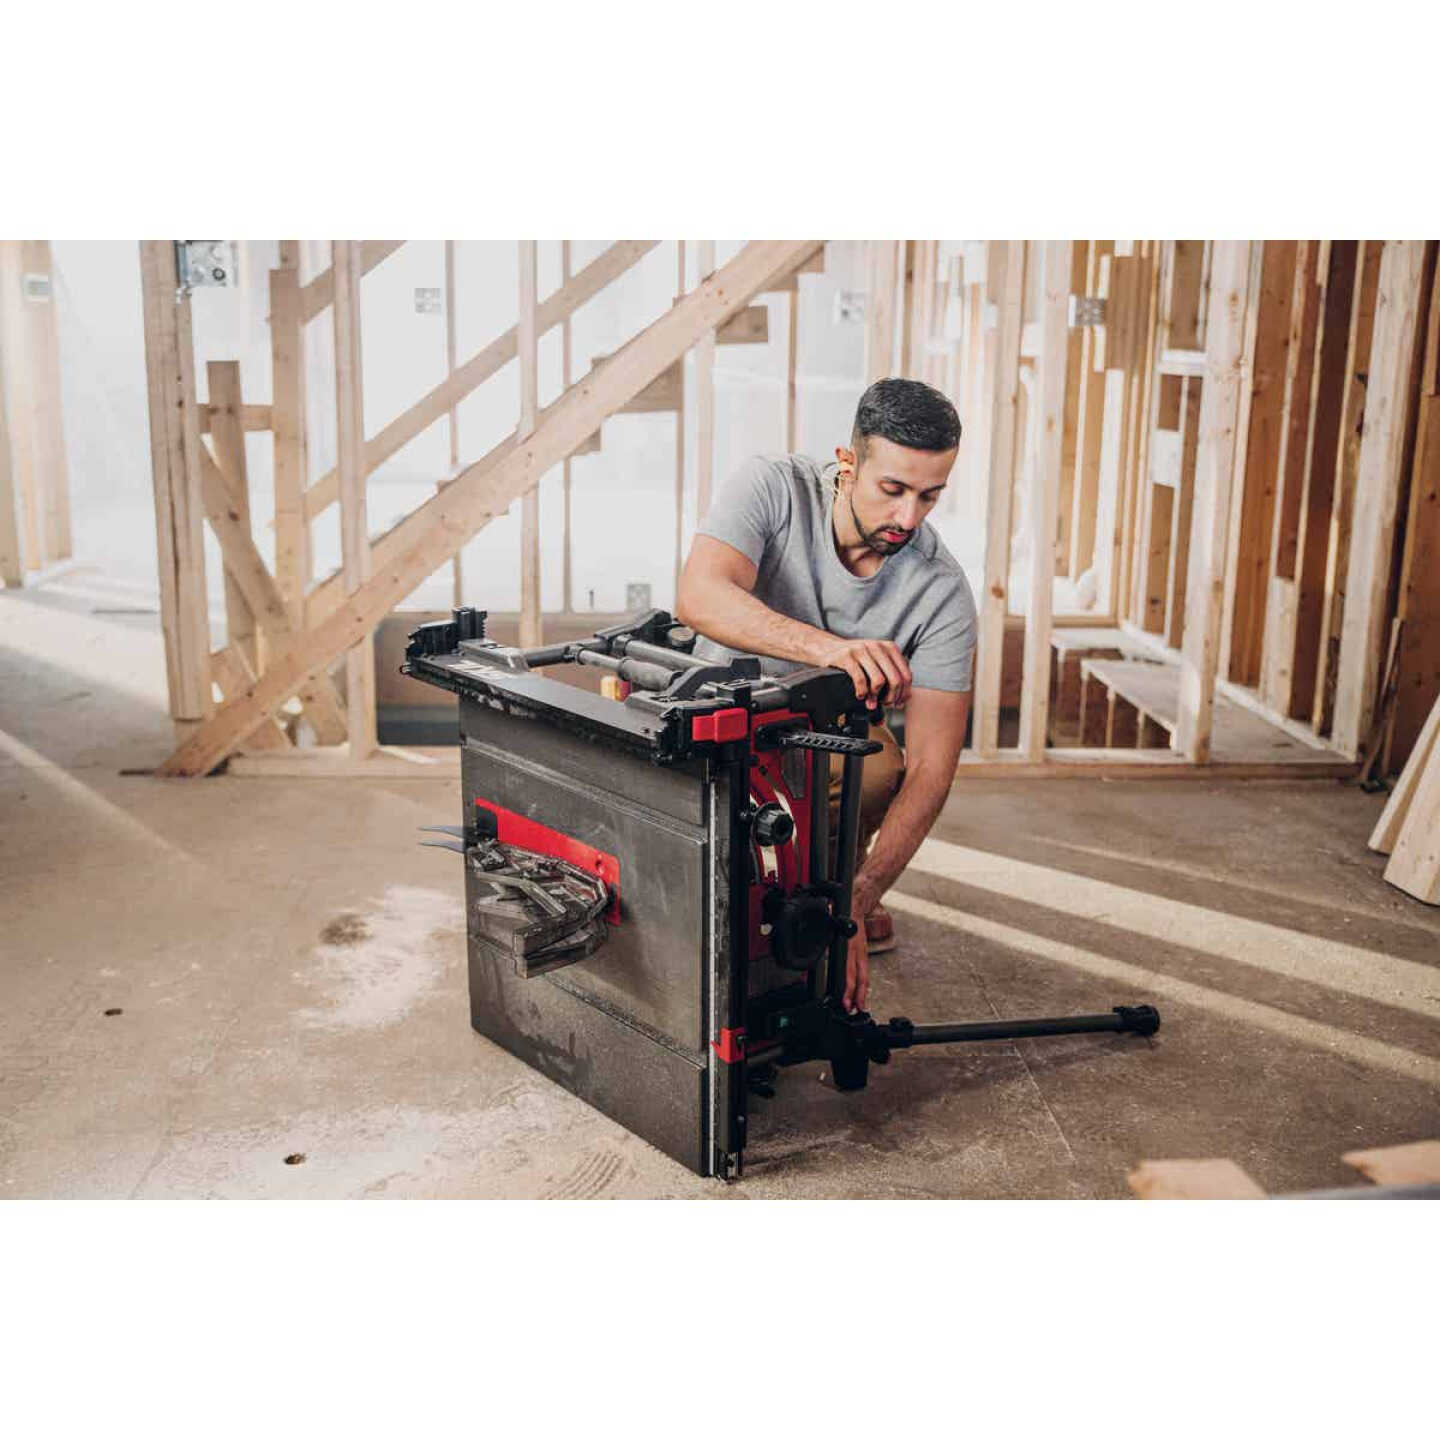 SKIL 15A 10 In. Table Saw with Integrated Folding Stand Image 6